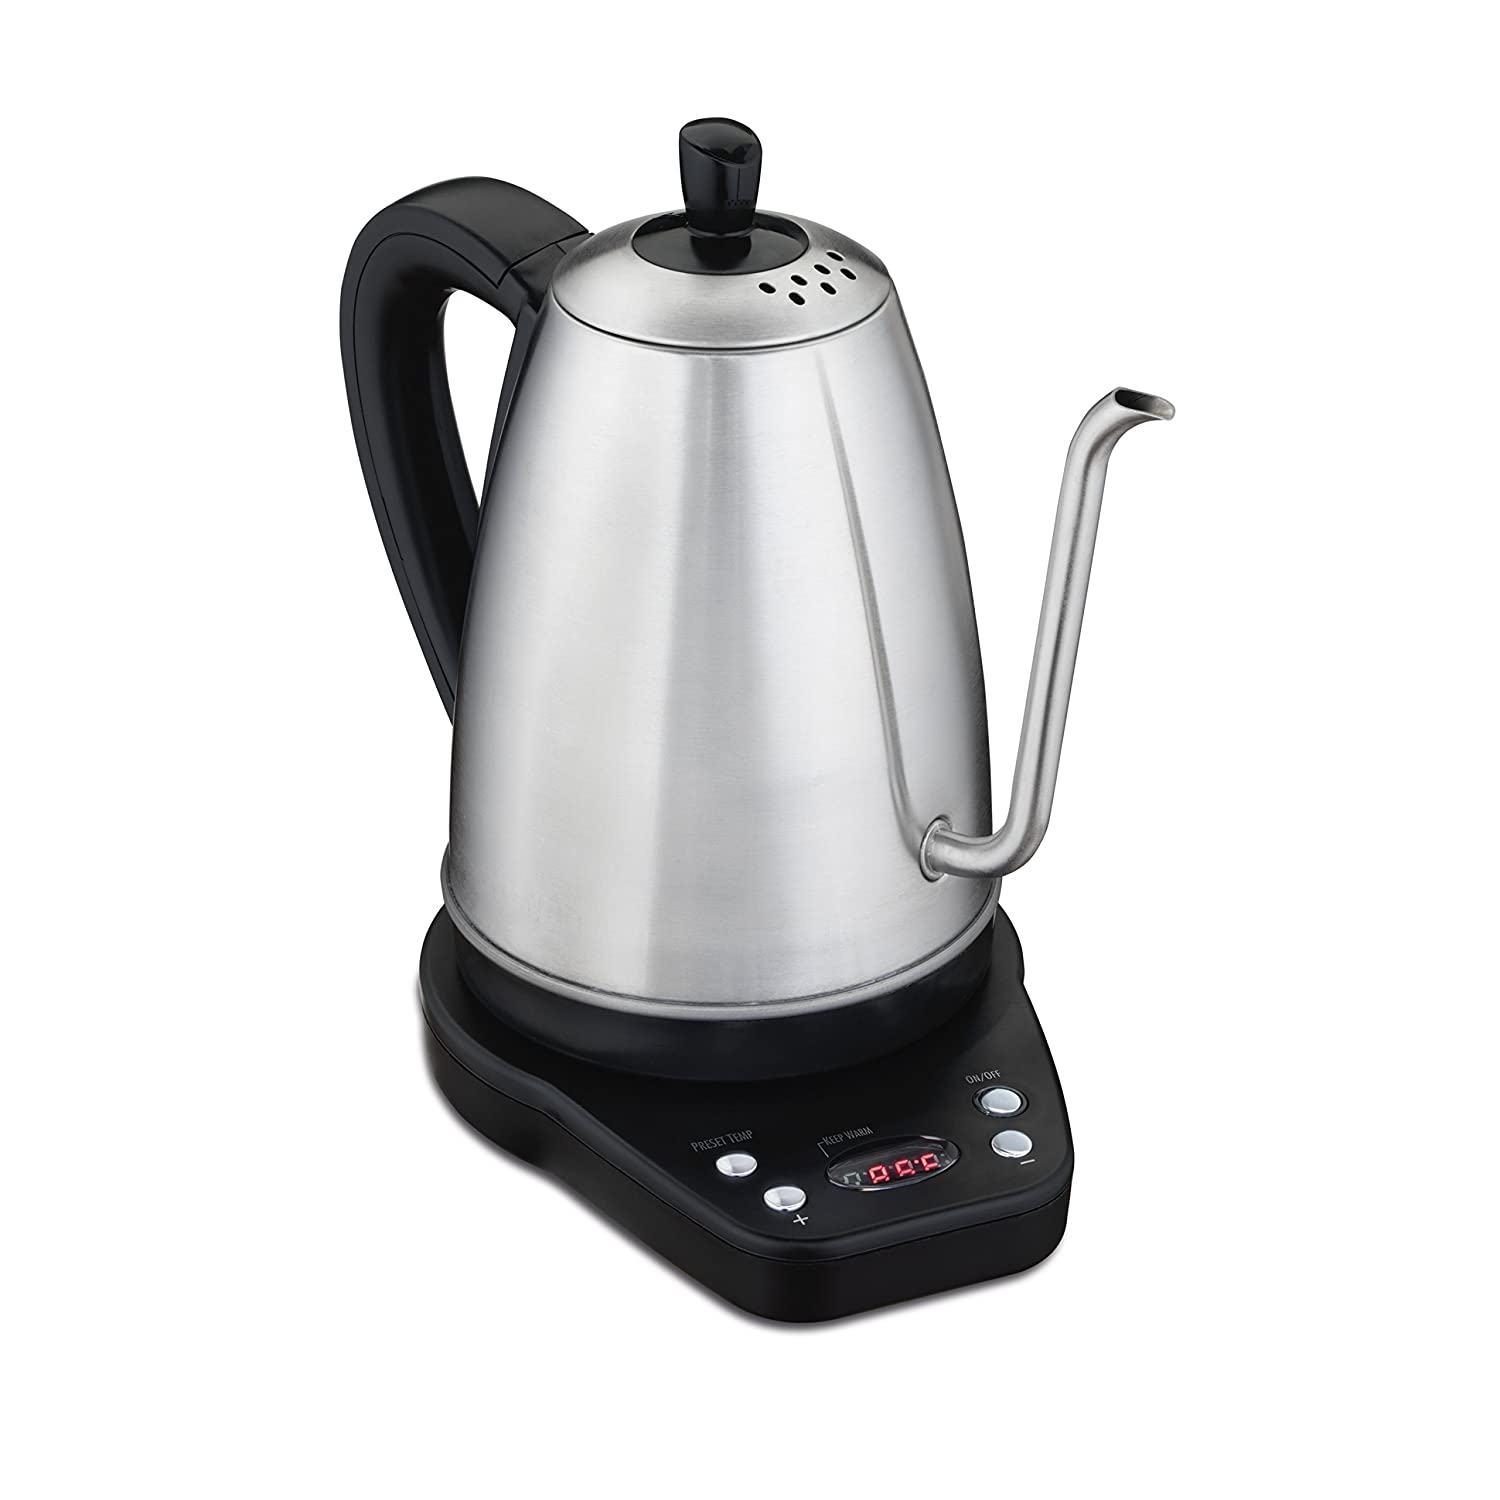 Hamilton Beach 41004 Digital Gooseneck Electric Kettle 040094410040 Silver